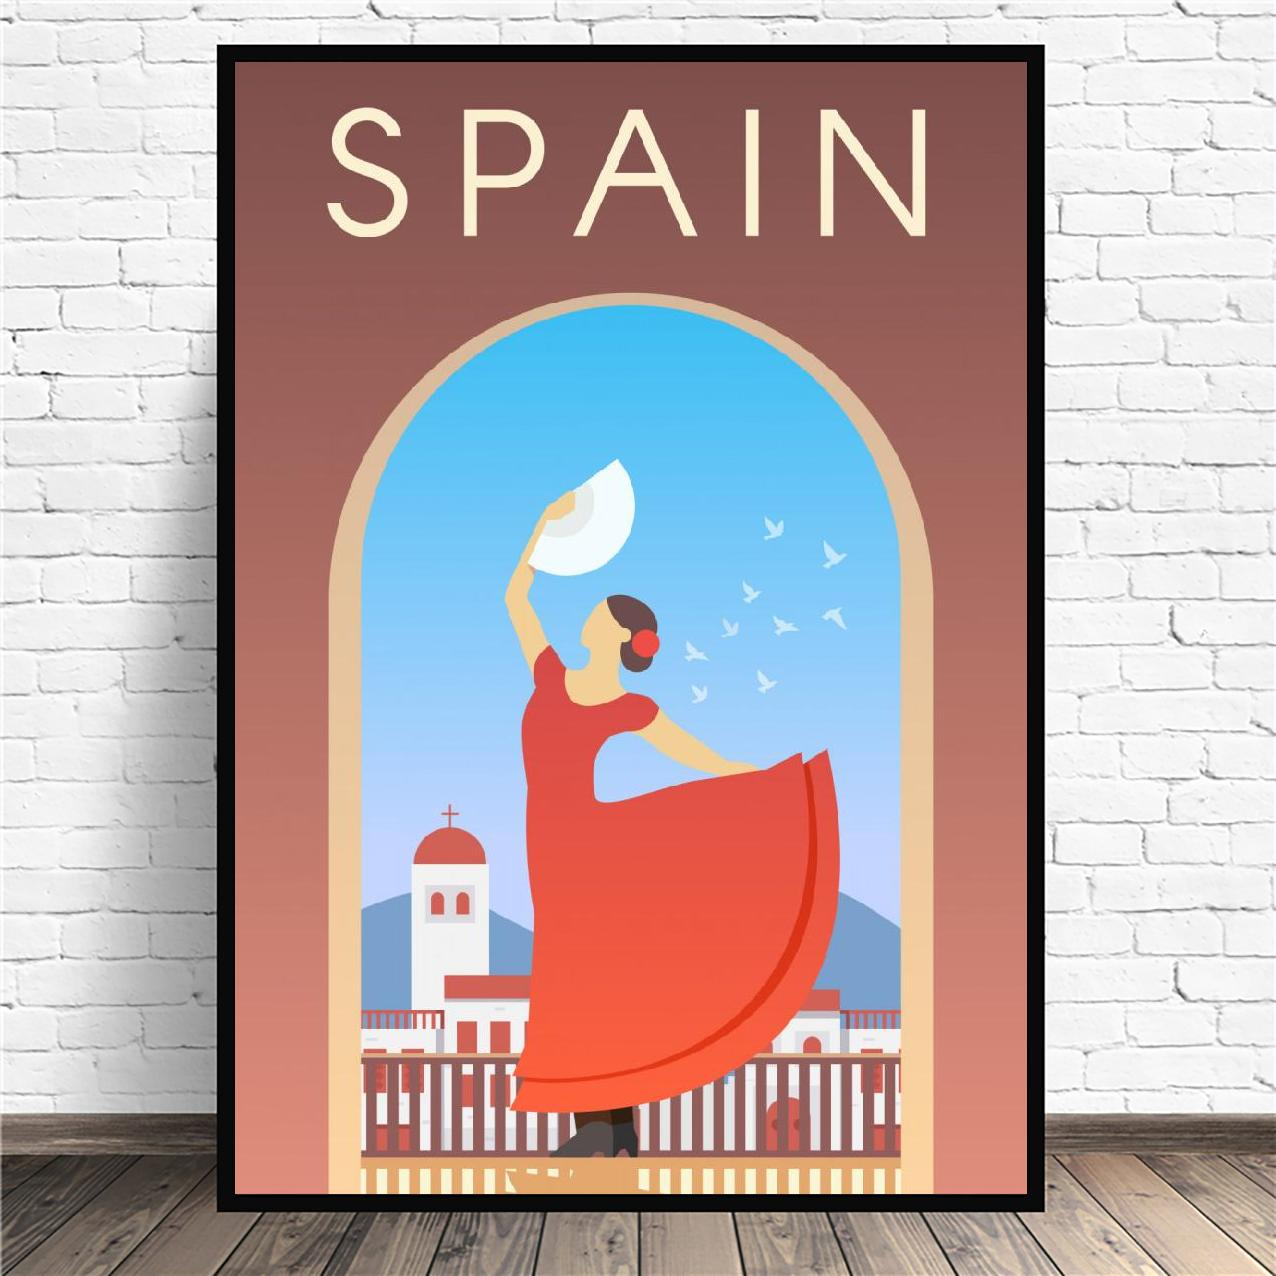 Spain Travel Canvas Painting Wall Art Pictures Prints Home Decor Wall Poster Decoration For Living Room